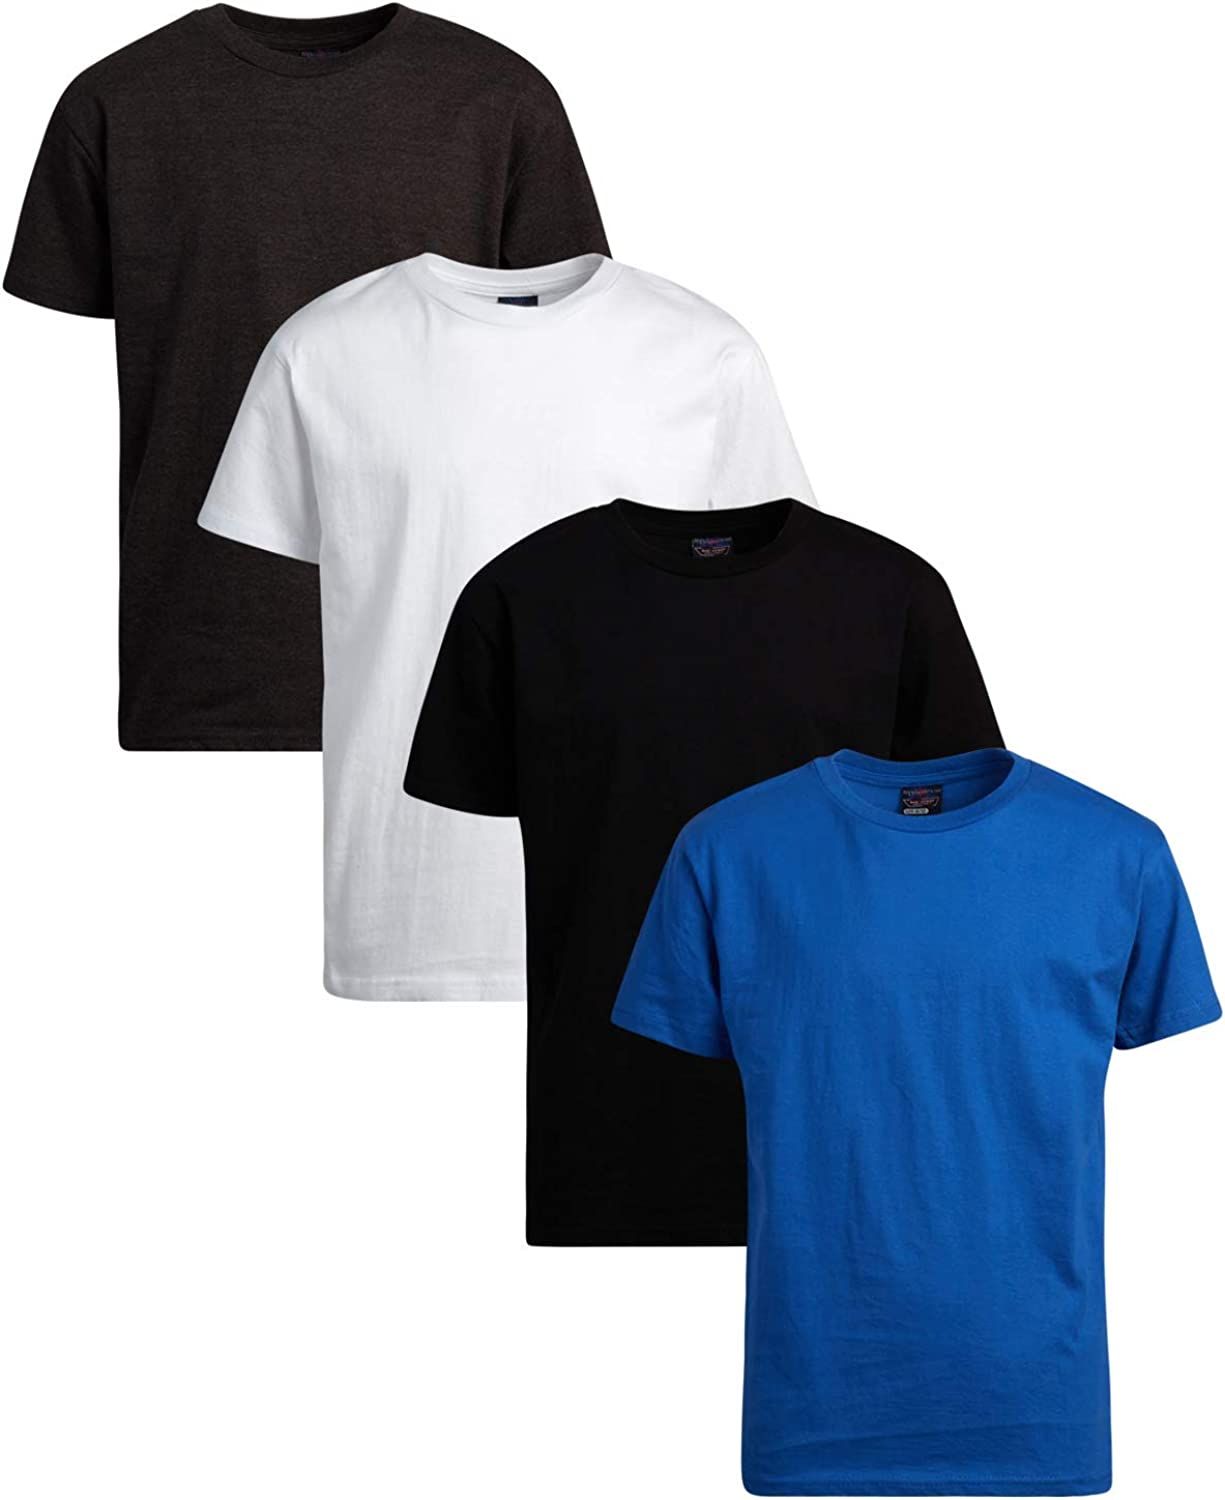 Quad Seven Boys' Solid Short Sleeved Cotton T-Shirts (4 Pack)